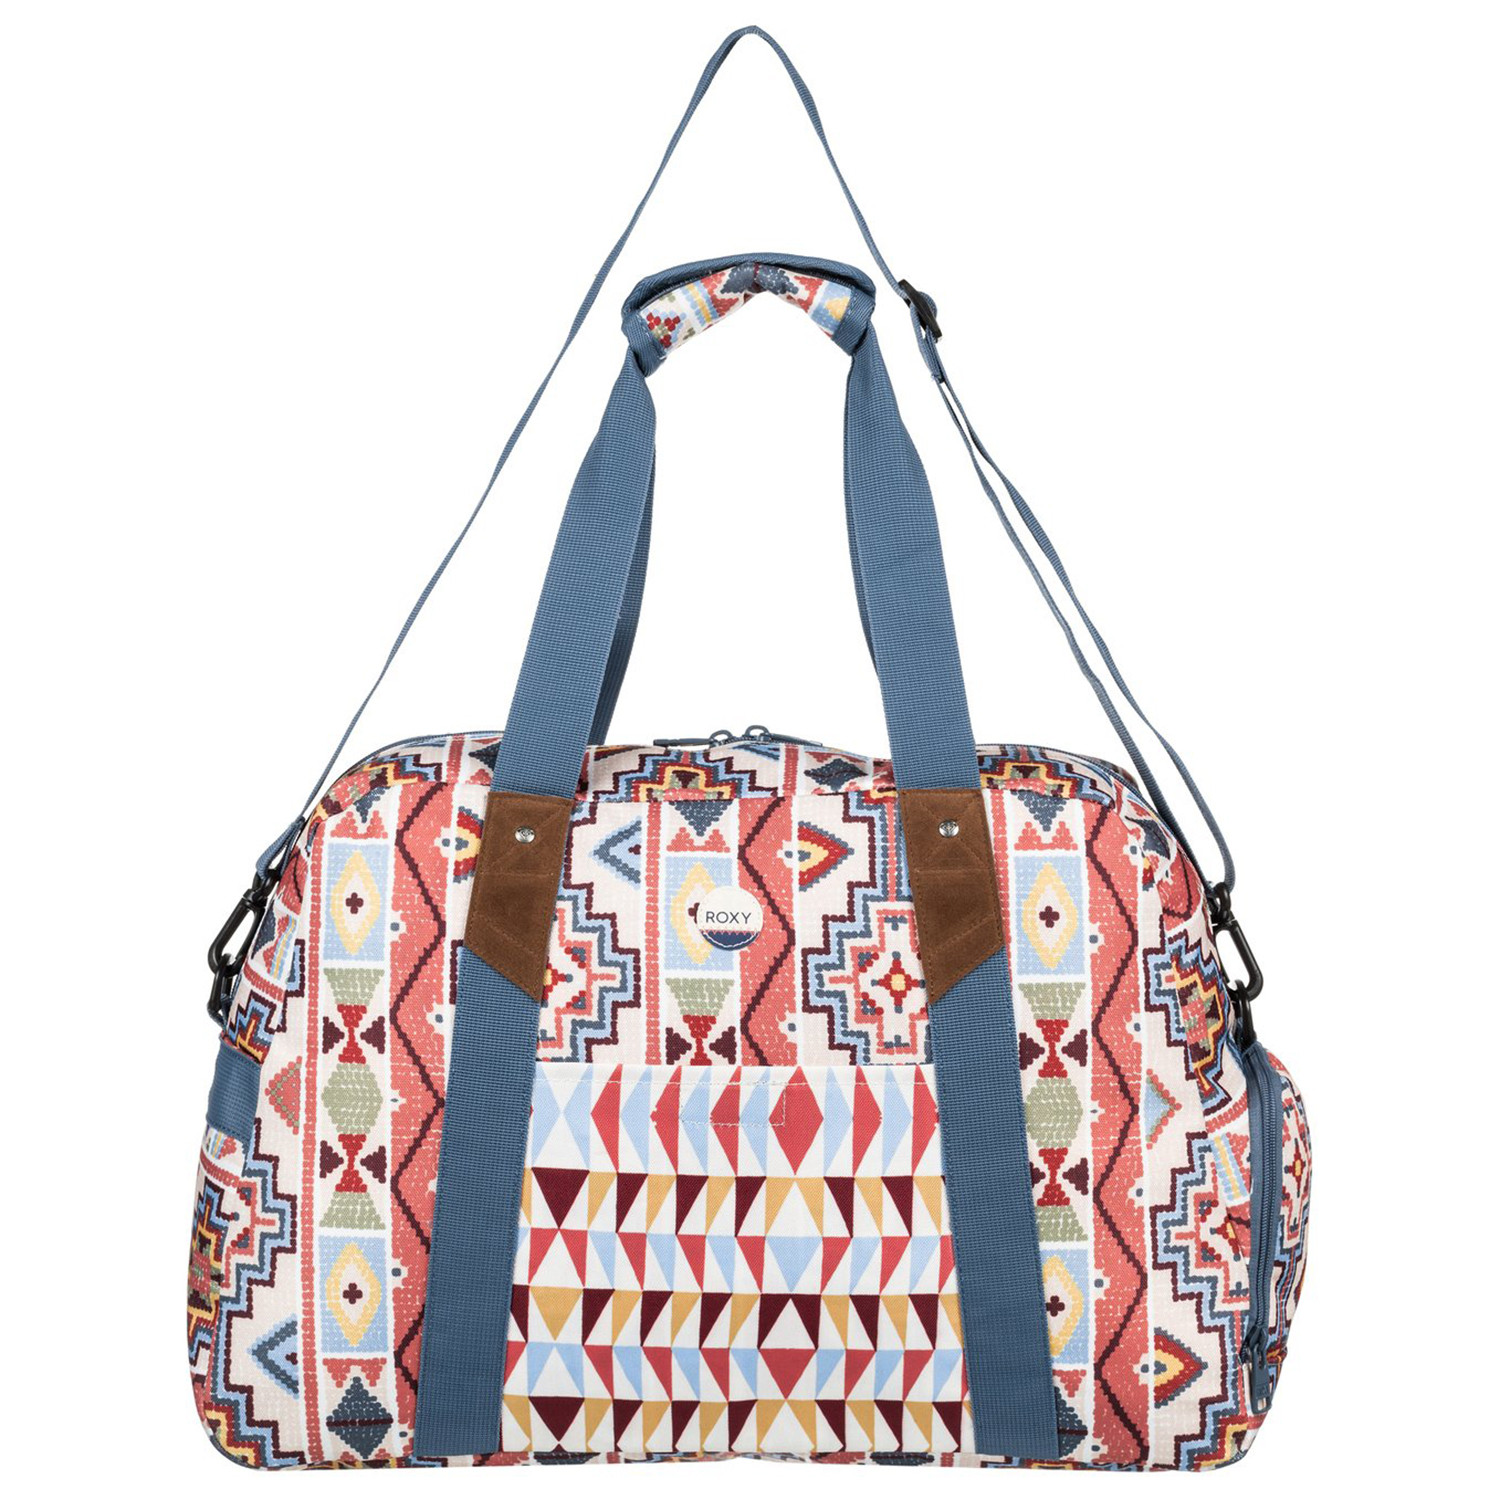 Voyage Multicolore Sugar It Roxy Femme Sac De Up Cher Pas zSUMpqV